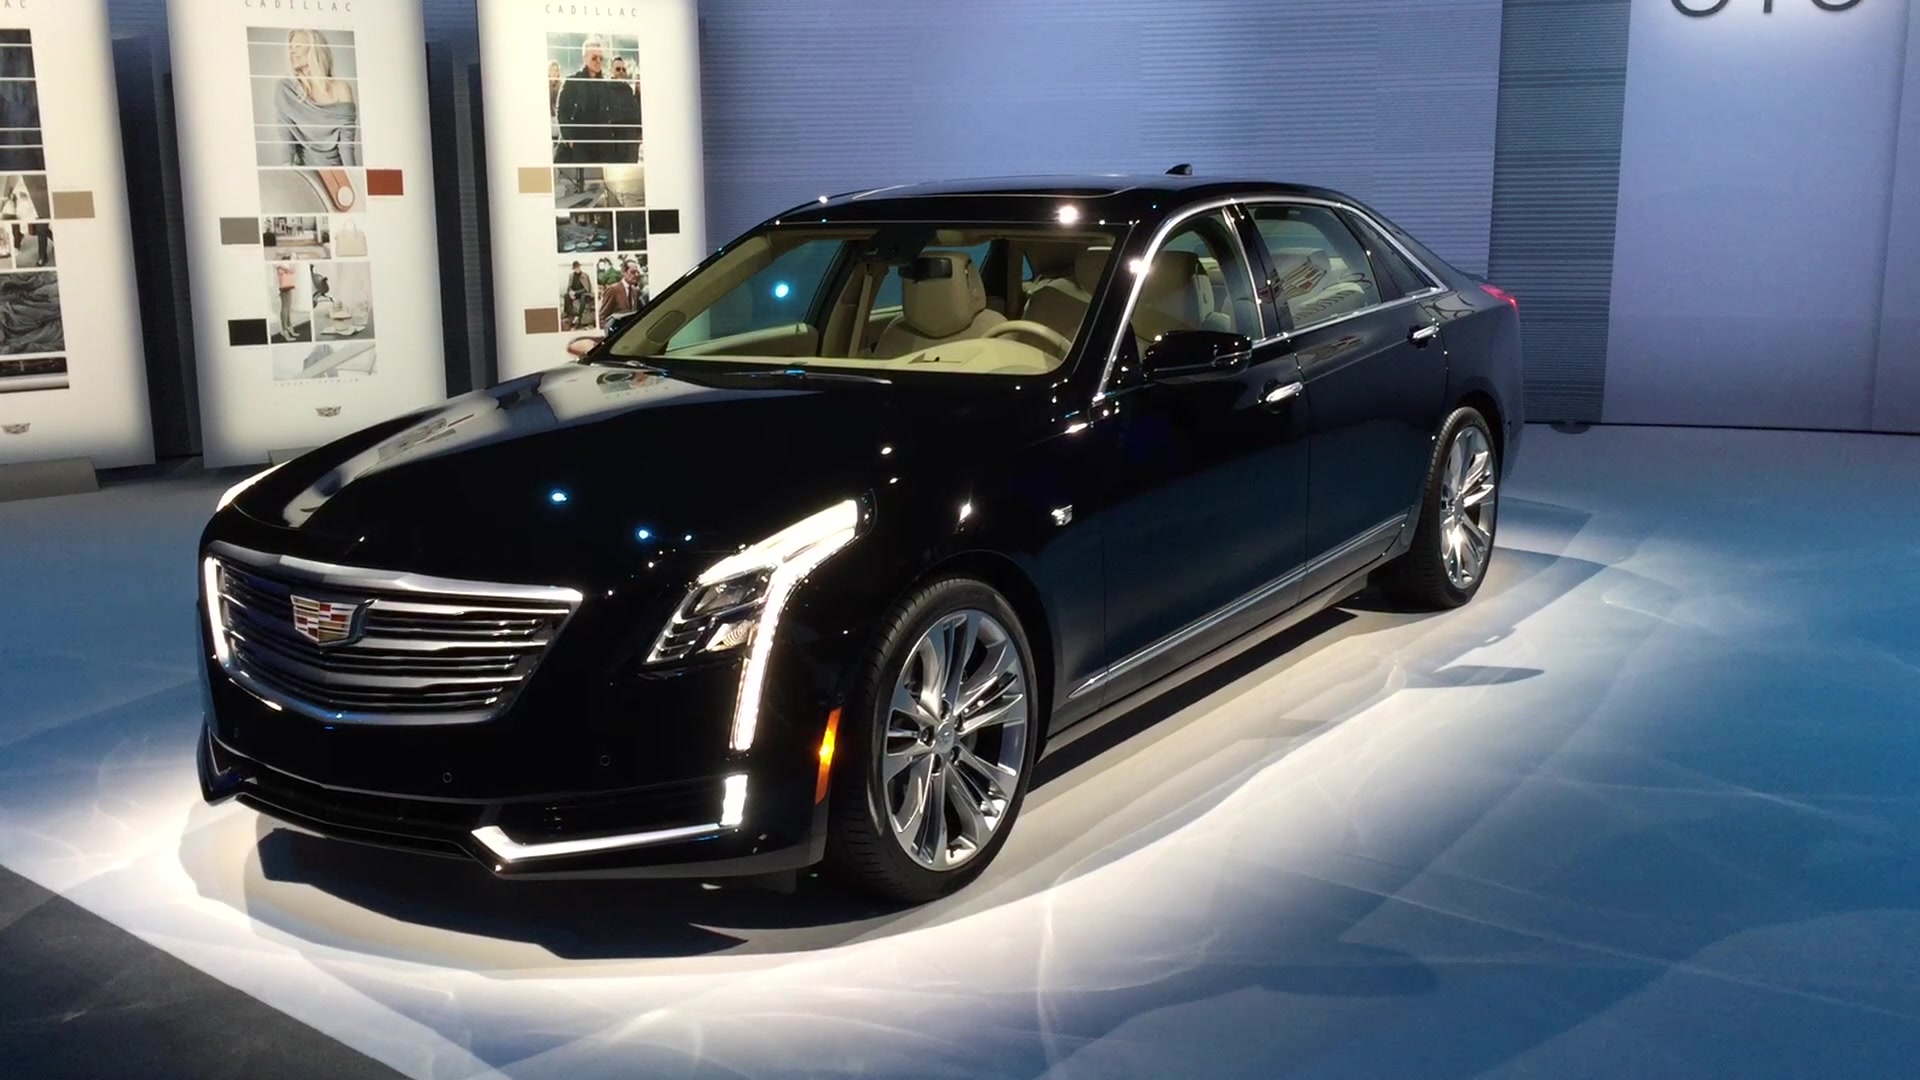 2016 Cadillac CT6 in Los Angeles | On Location